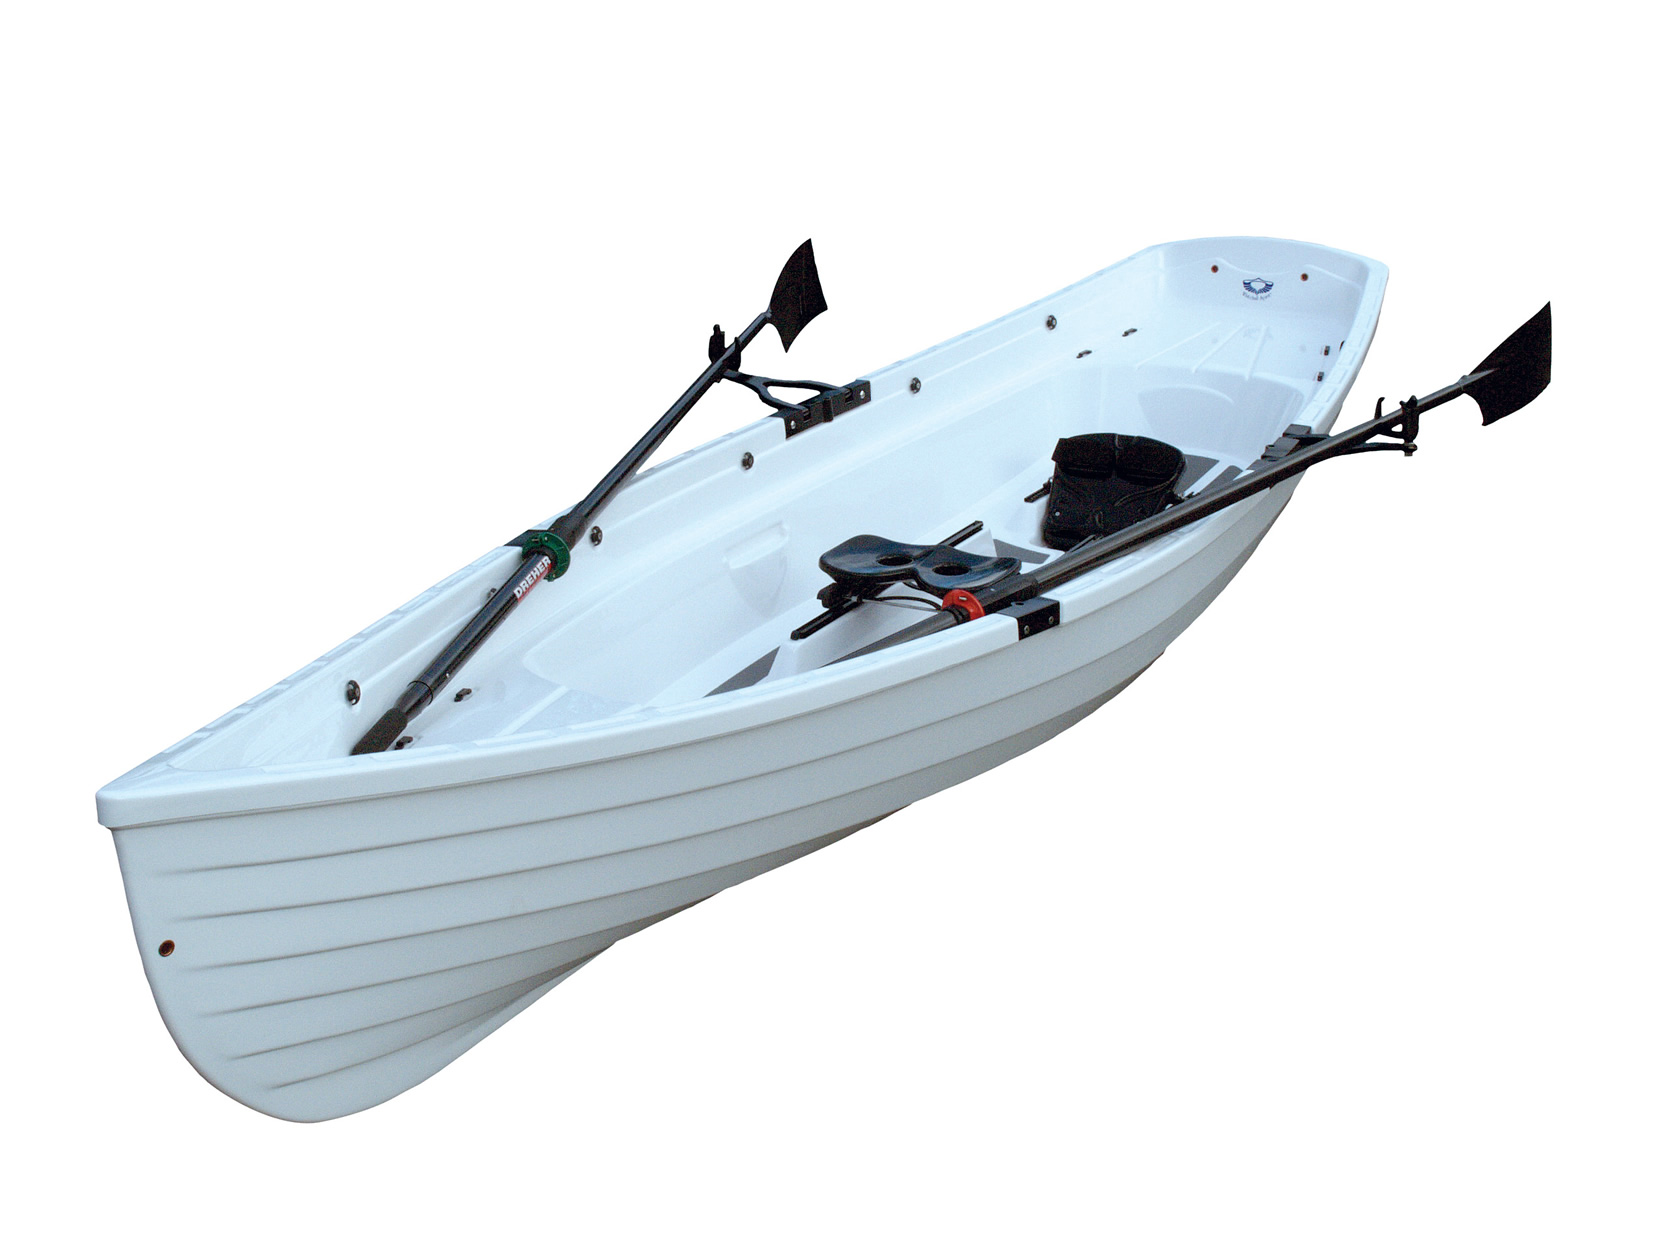 Solo 14® Slide Seat Sculling Whitehall Rowboat, Whitehall Rowing & Sail